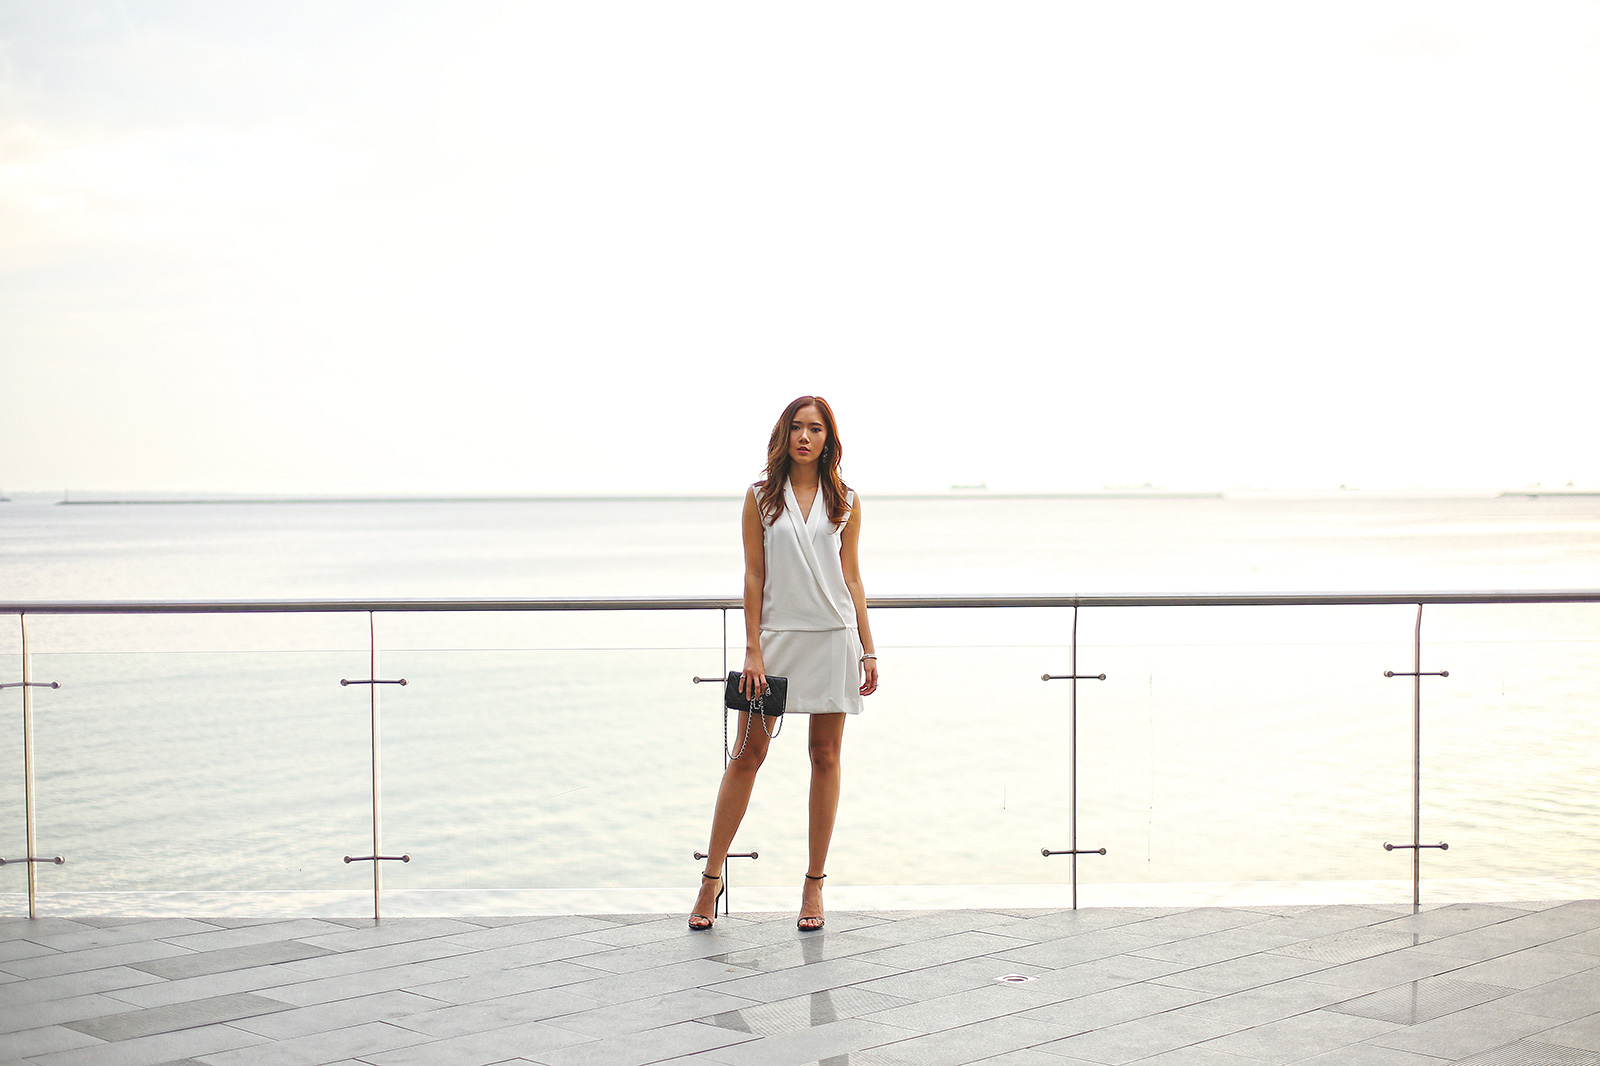 Sandro dress, Chanel wallet on chain, Stuart Weitzman nudist heels | www.itscamilleco.com